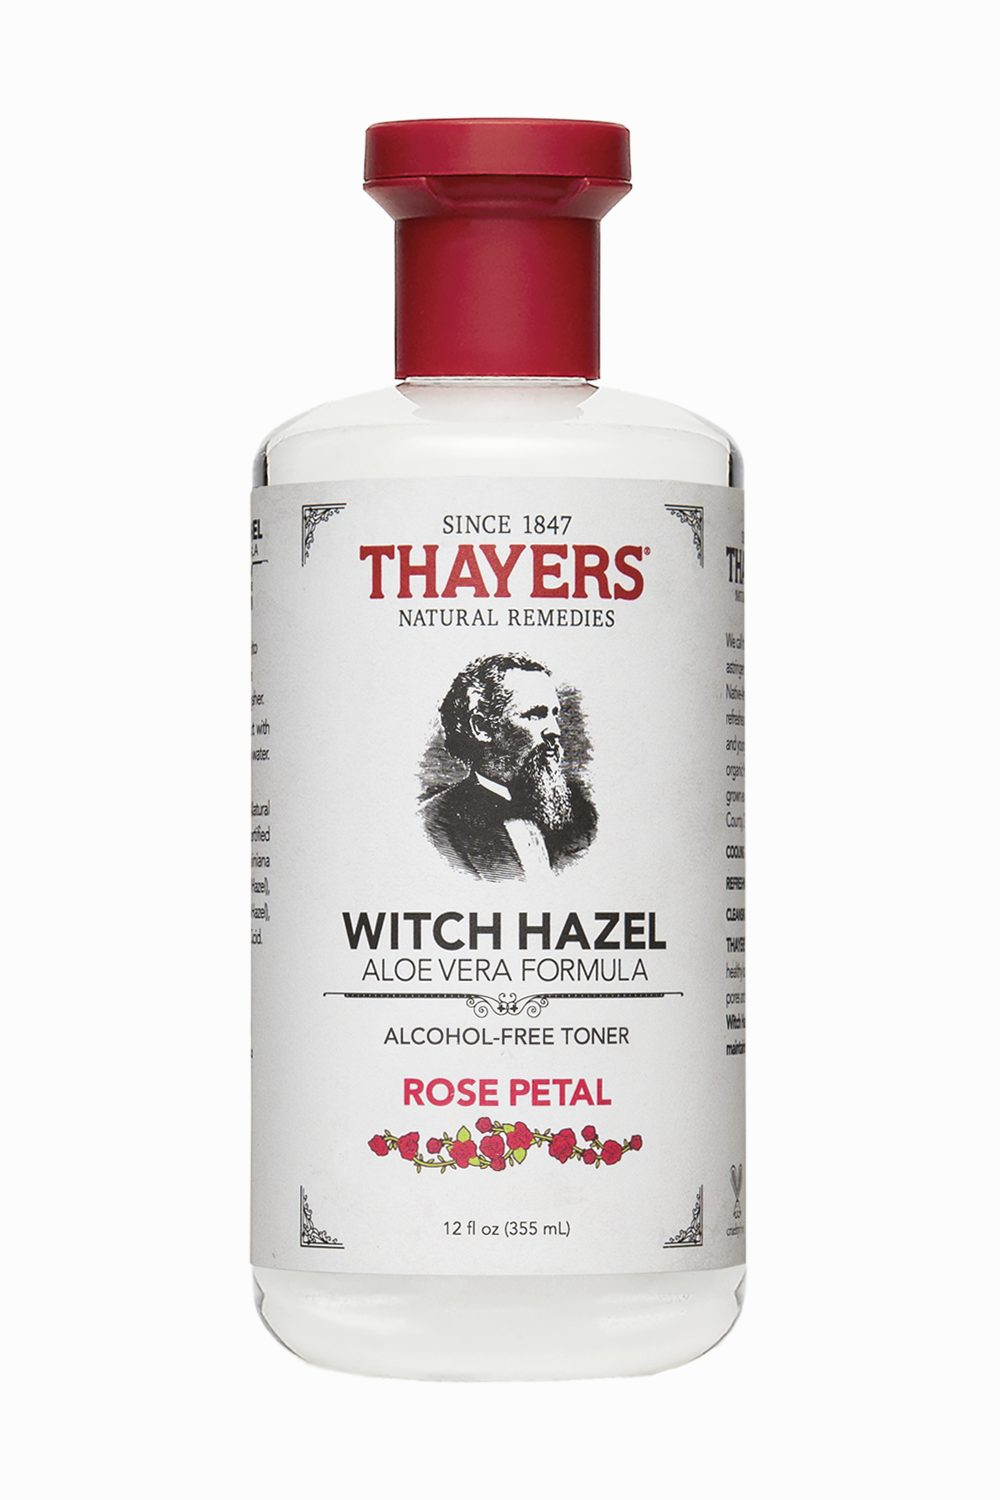 Thayers Witch Hazel Toner for Best Drugstore Skincare Products